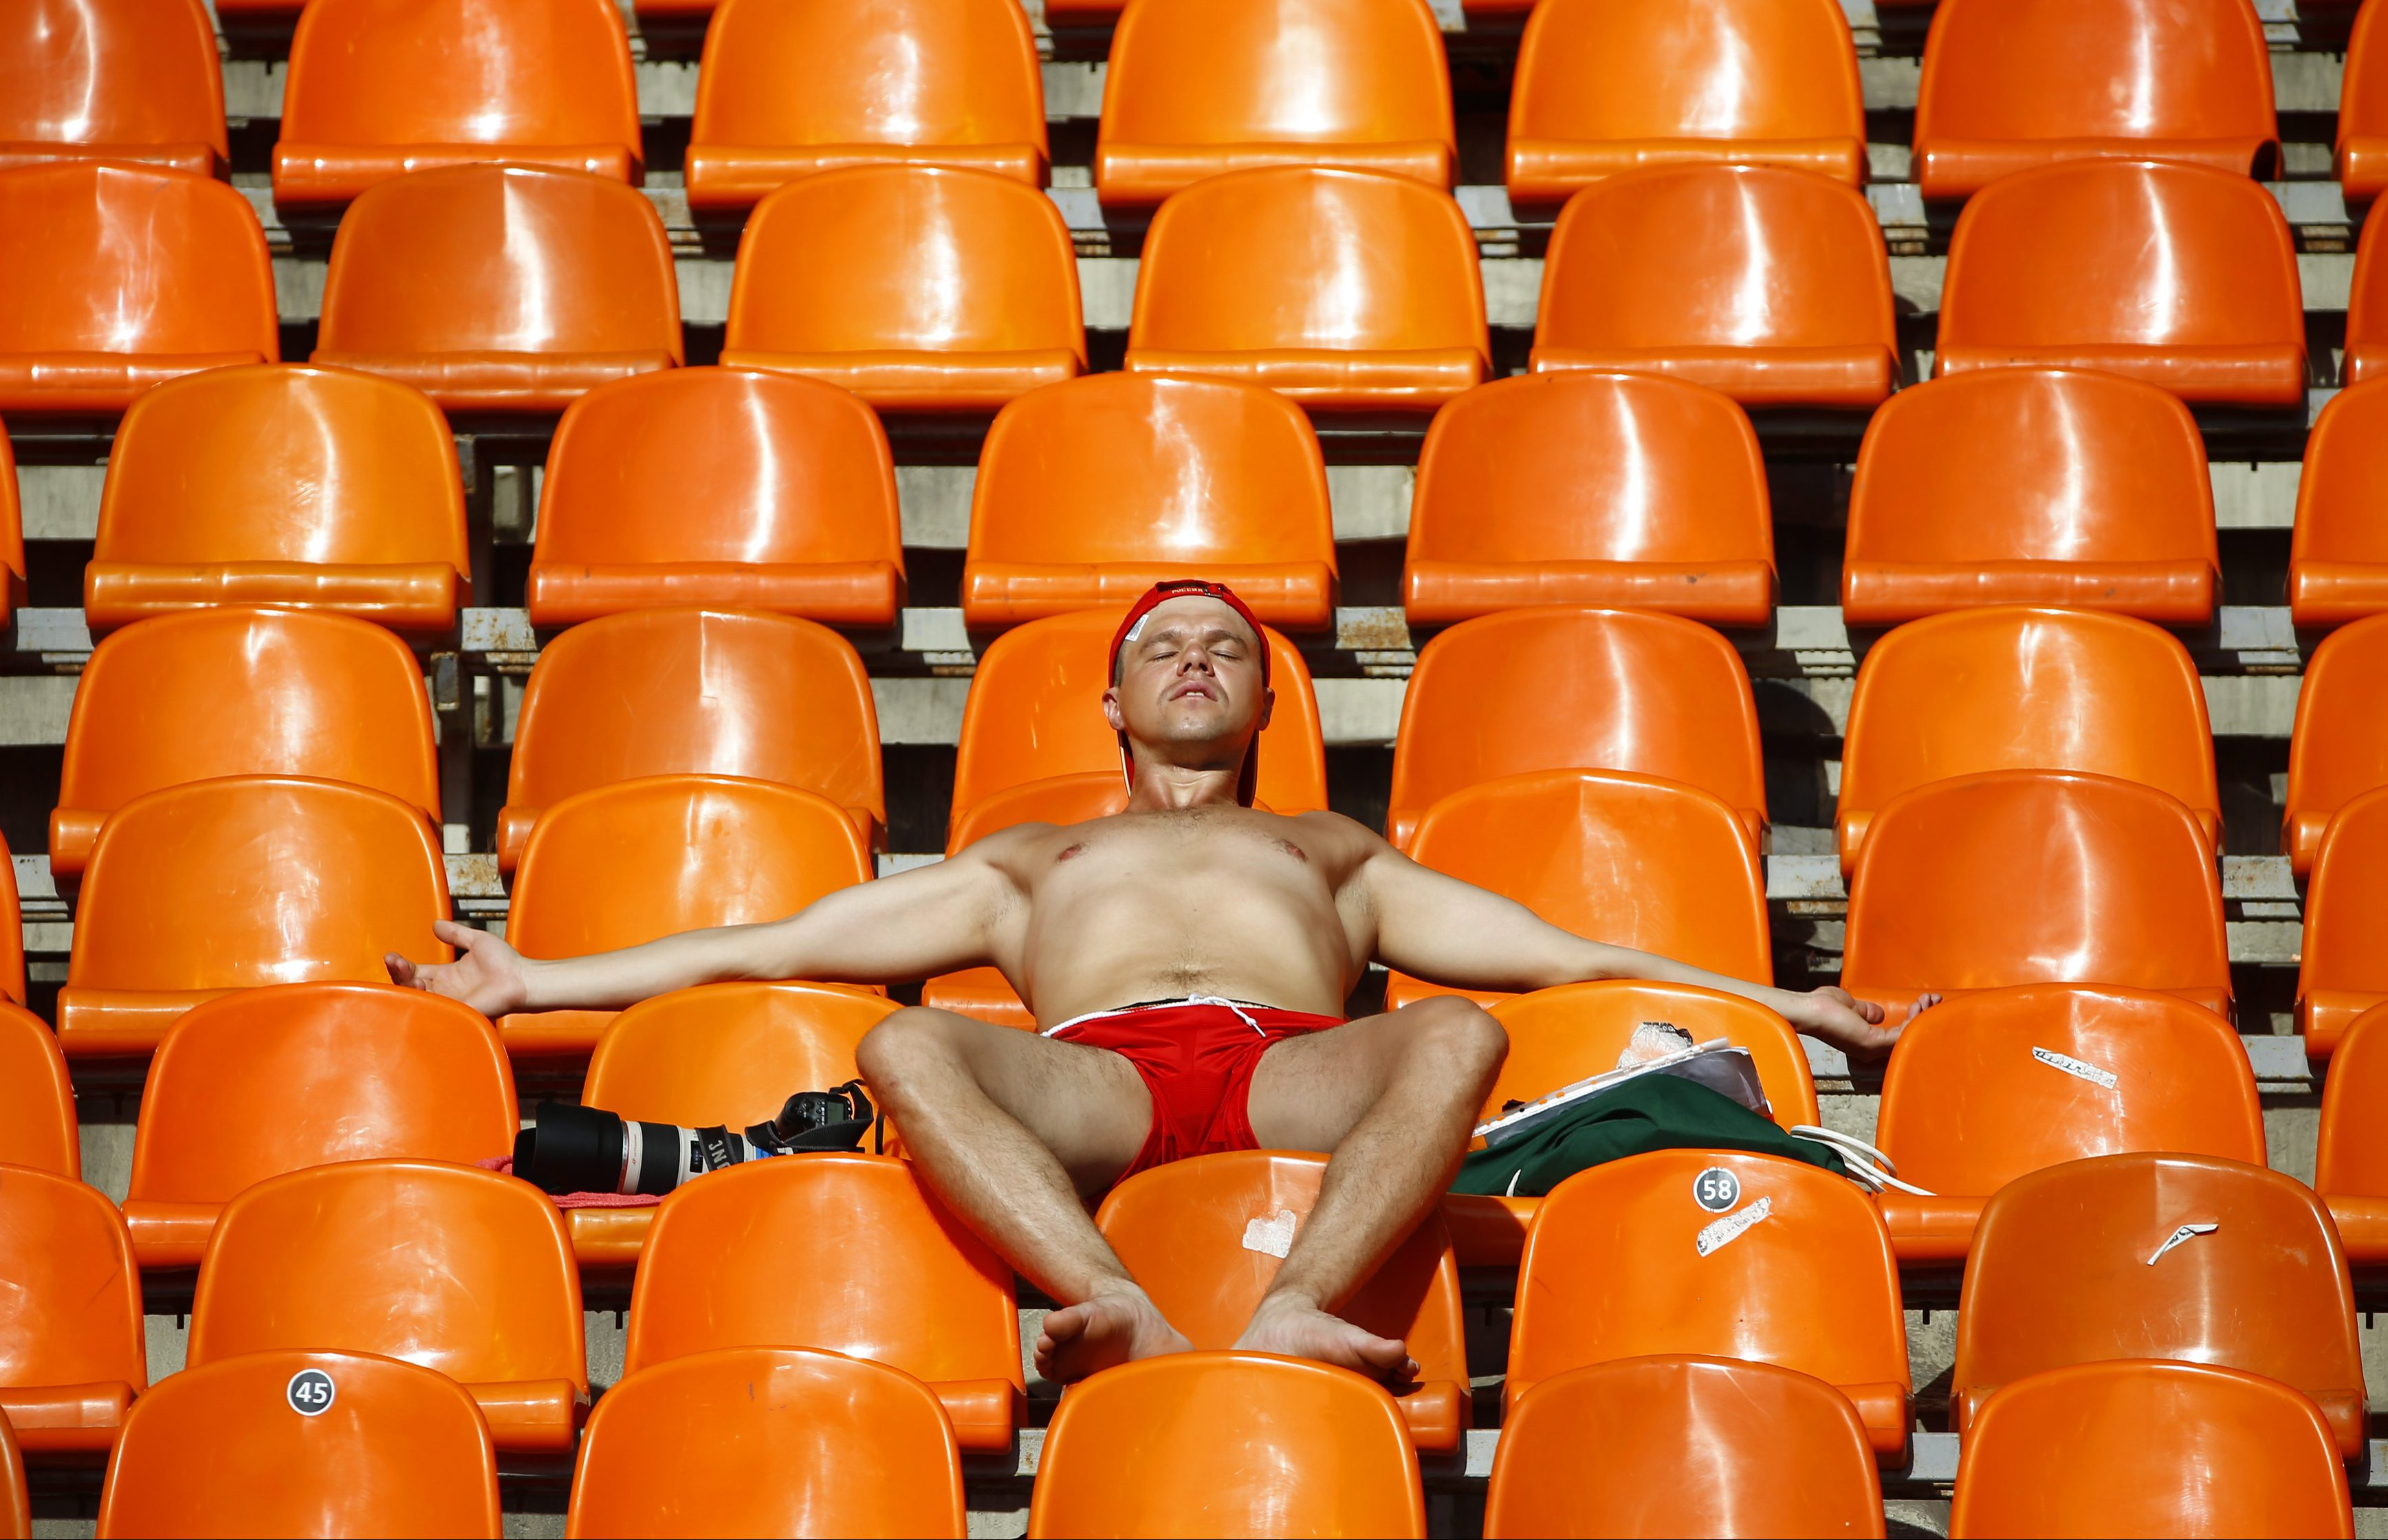 A spectator tans himself in the sun during the morning session of the IAAF World Athletics Championships at the Luzhniki stadium in Moscow August 13, 2013.